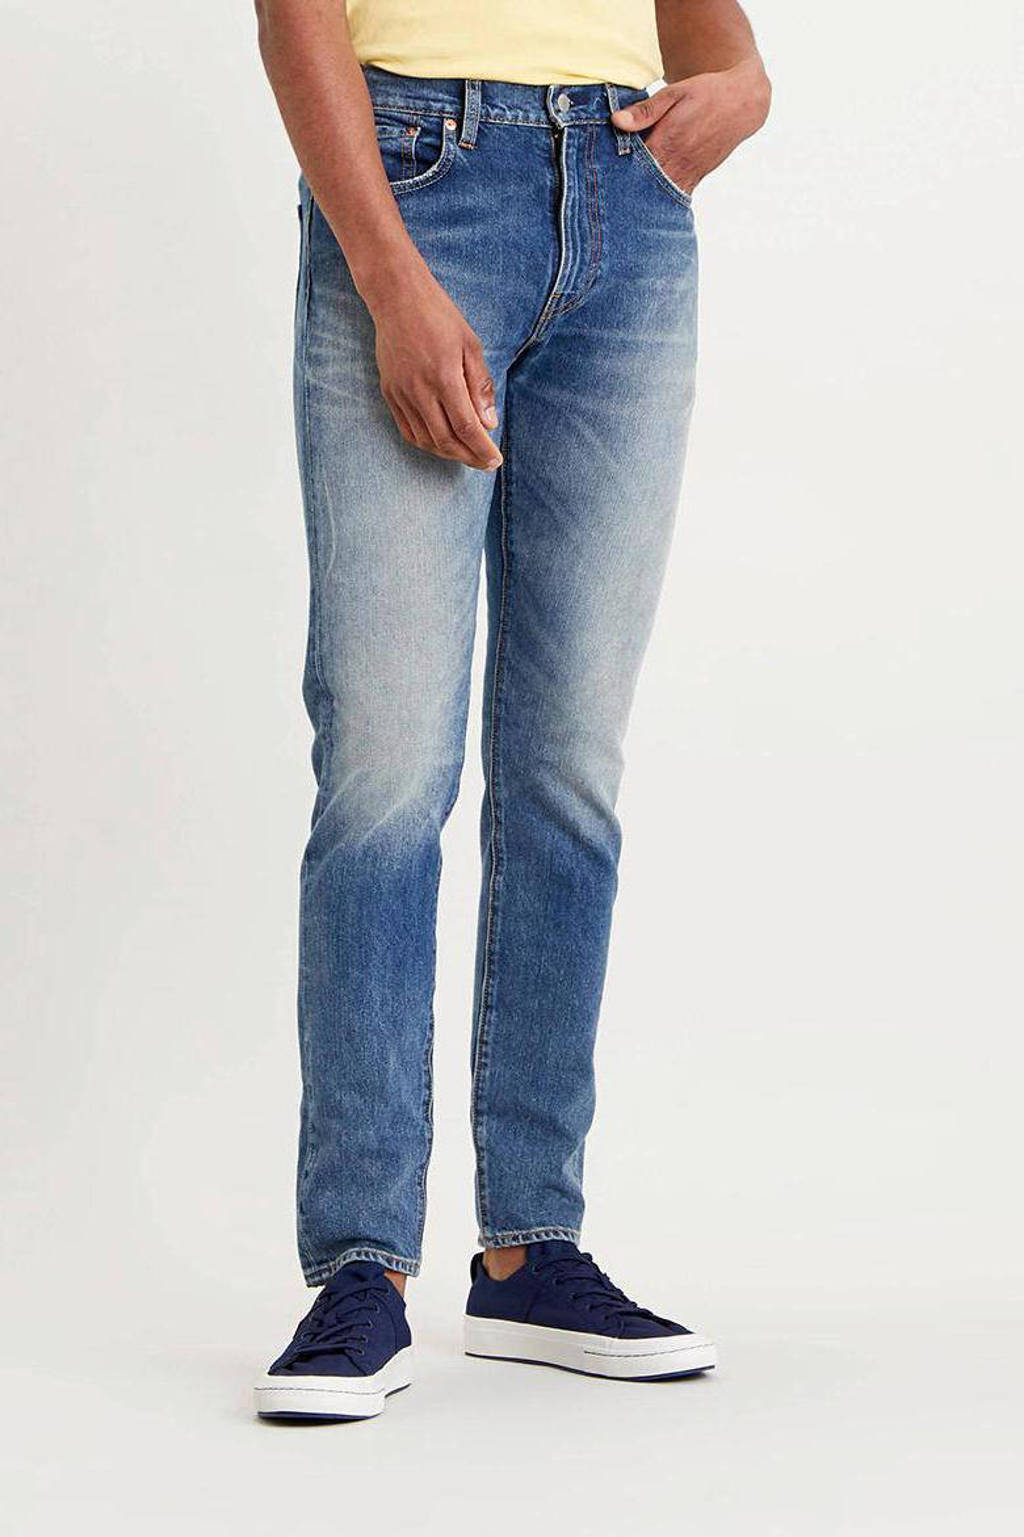 Levi's 512 slim tapered fit jeans yell and shout adapt, YELL AND SHOUT ADAPT